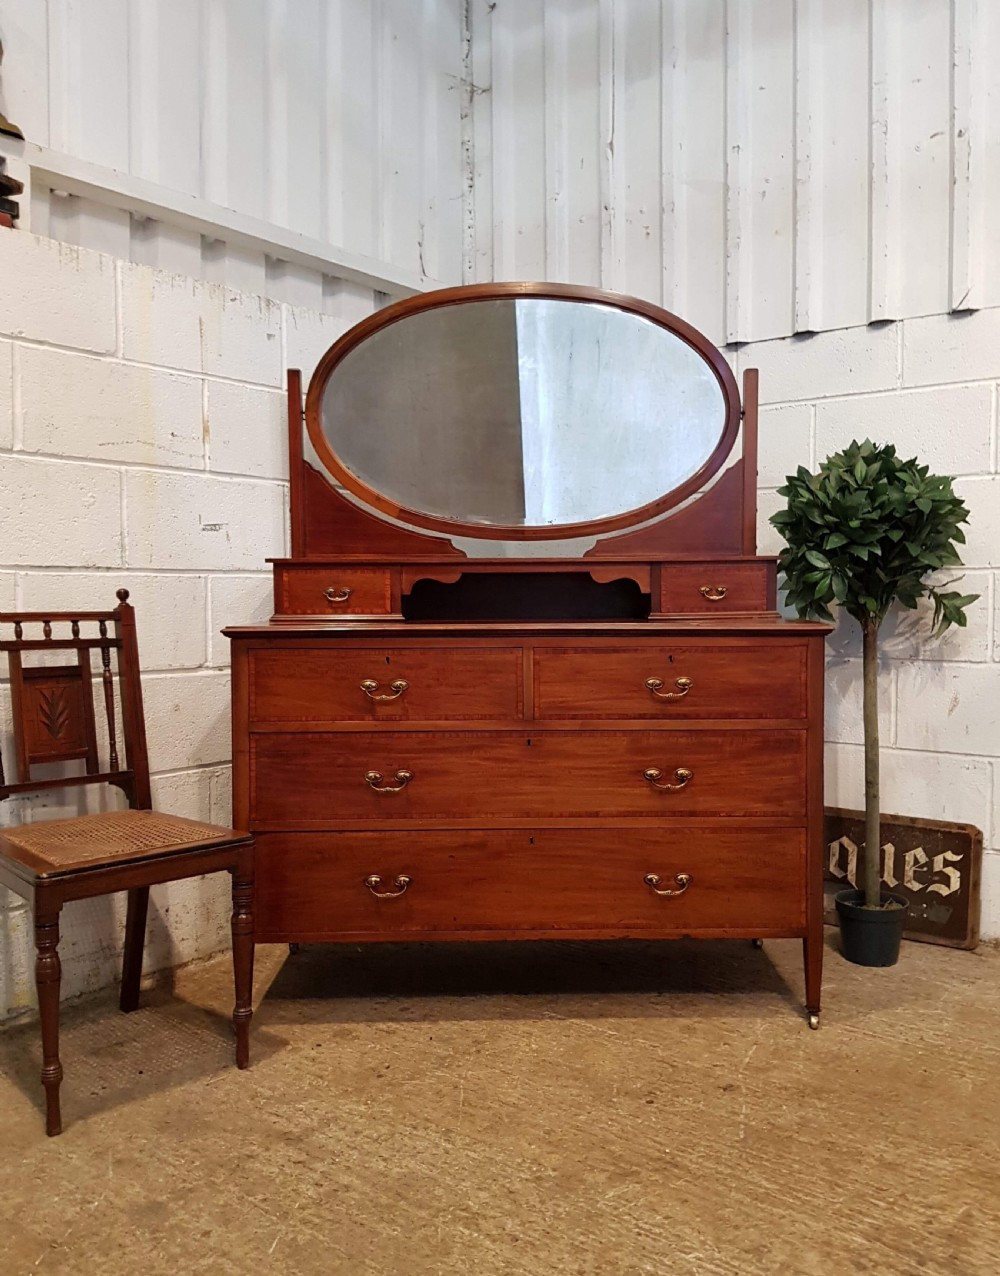 antique edwardian mahogany dressing table chest c1900